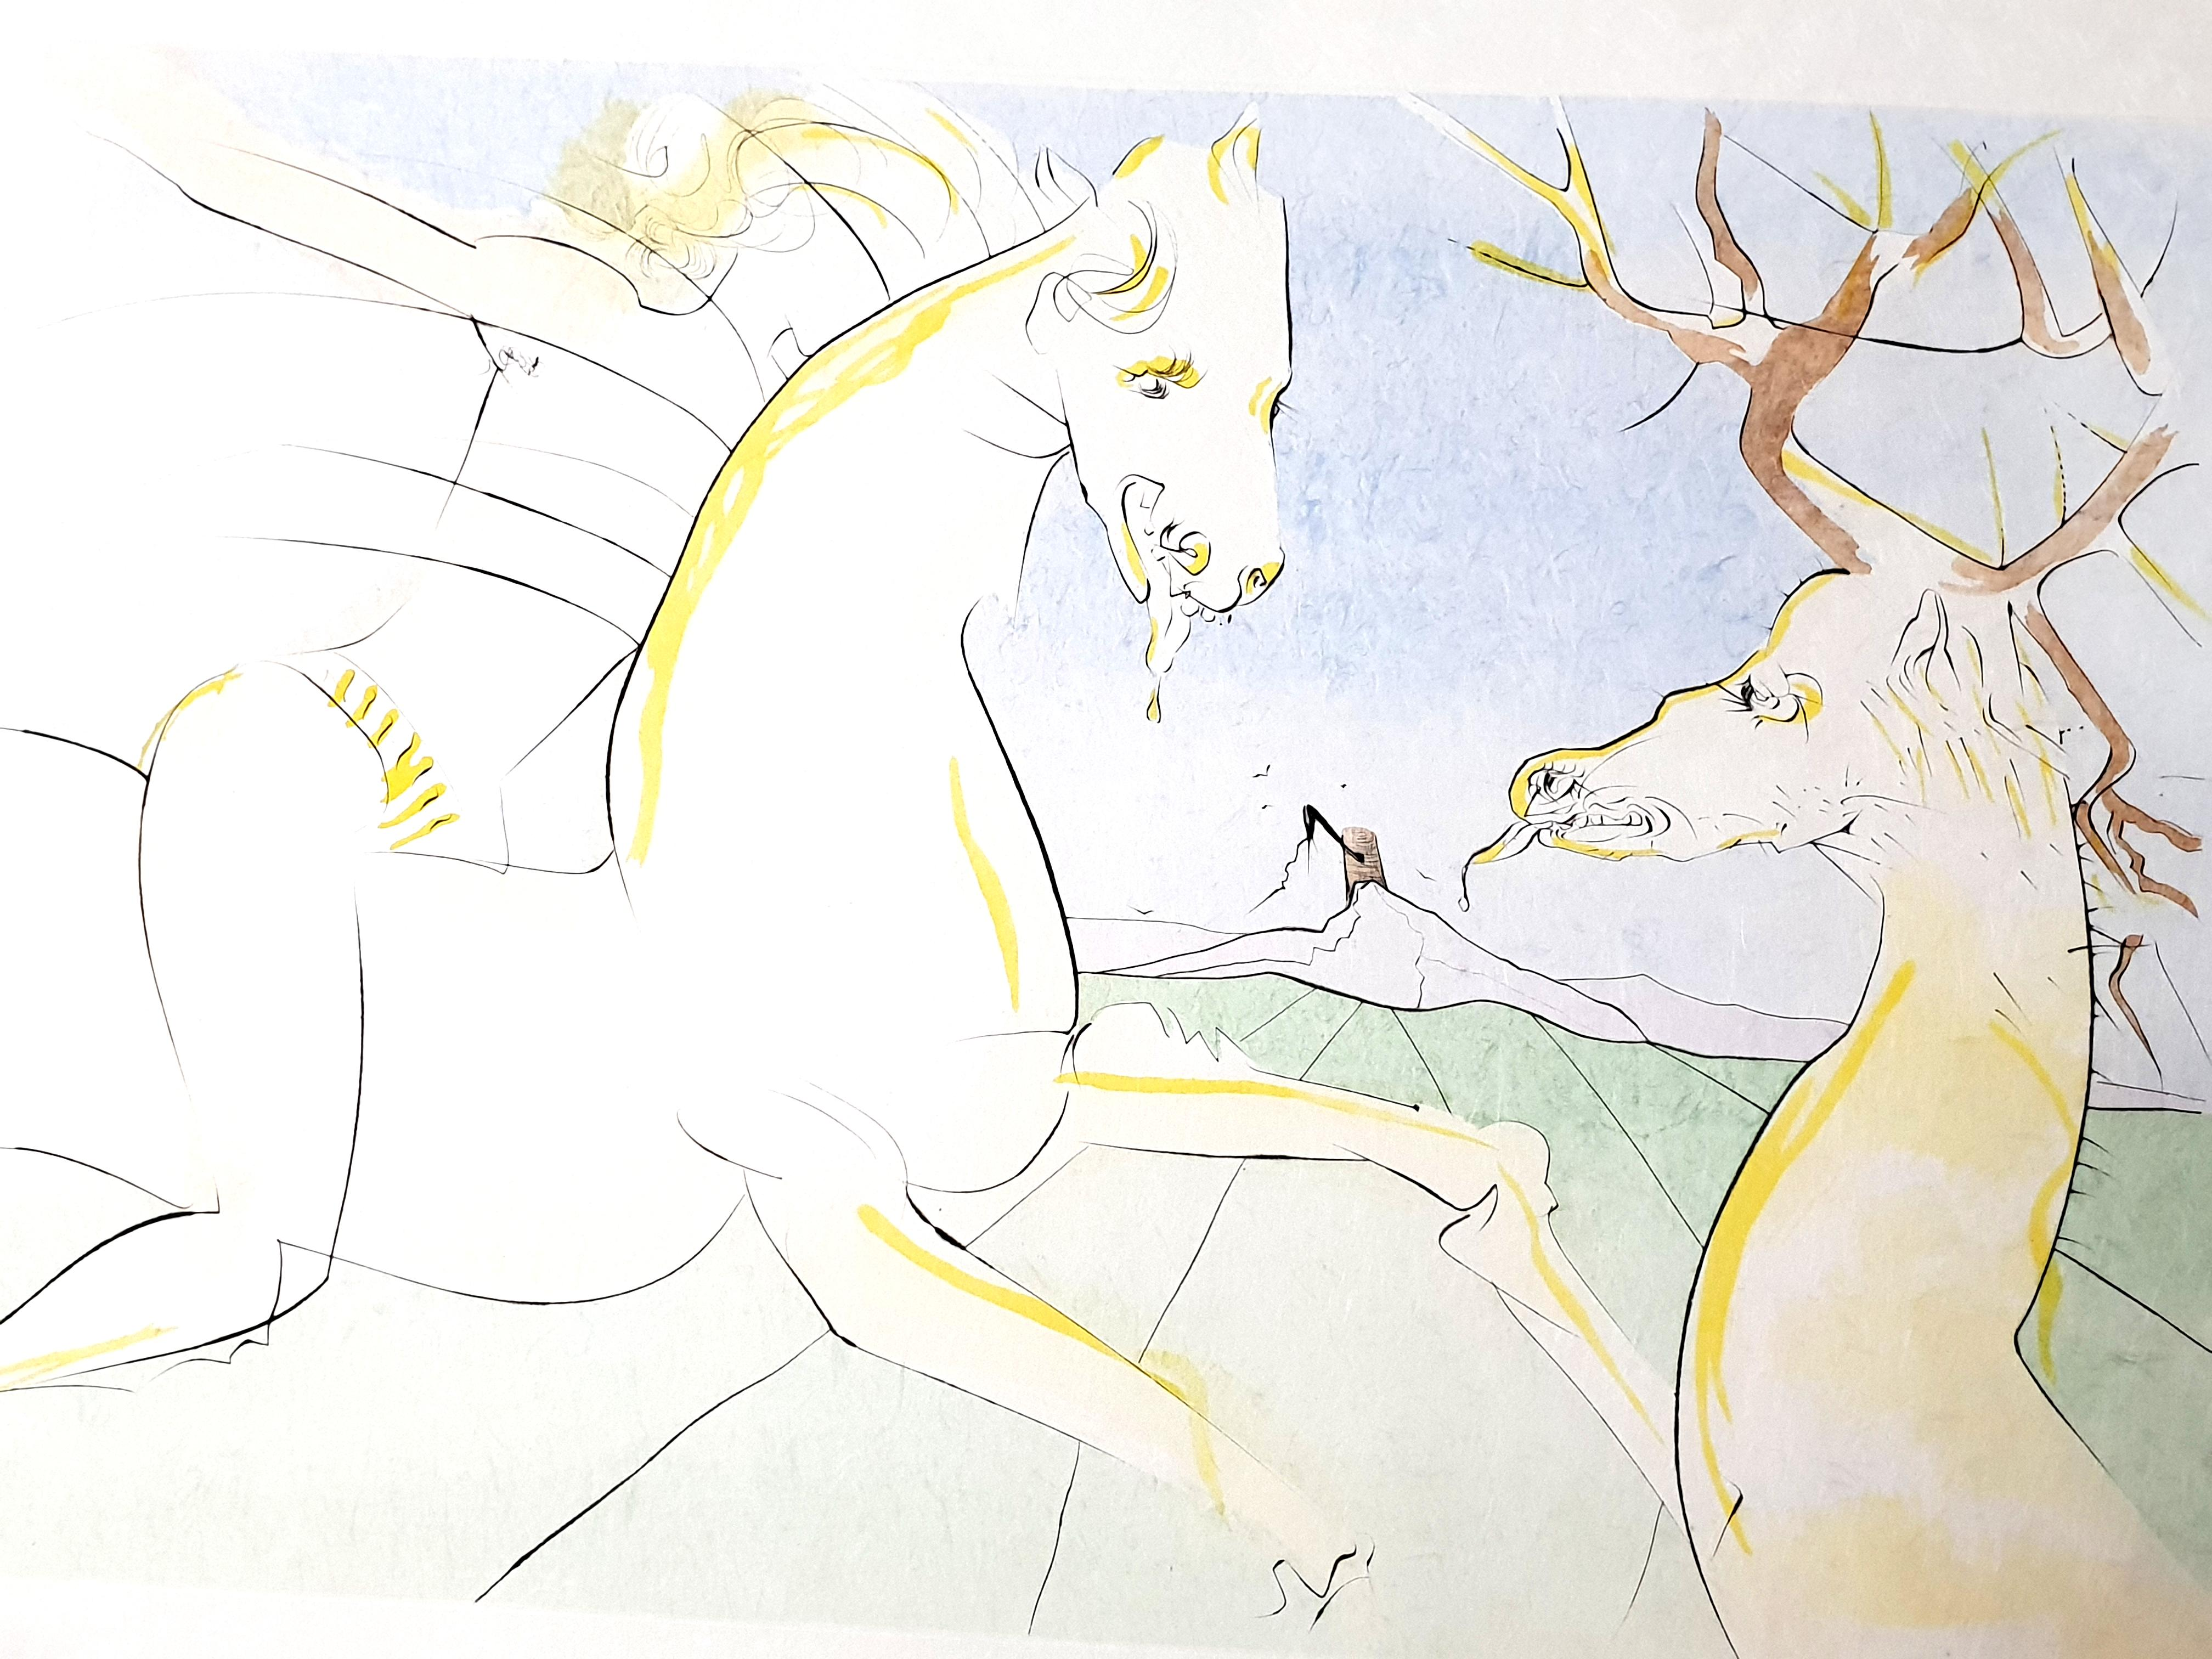 Salvador Dali - The Rider and the Deer - Handsigned Engraving